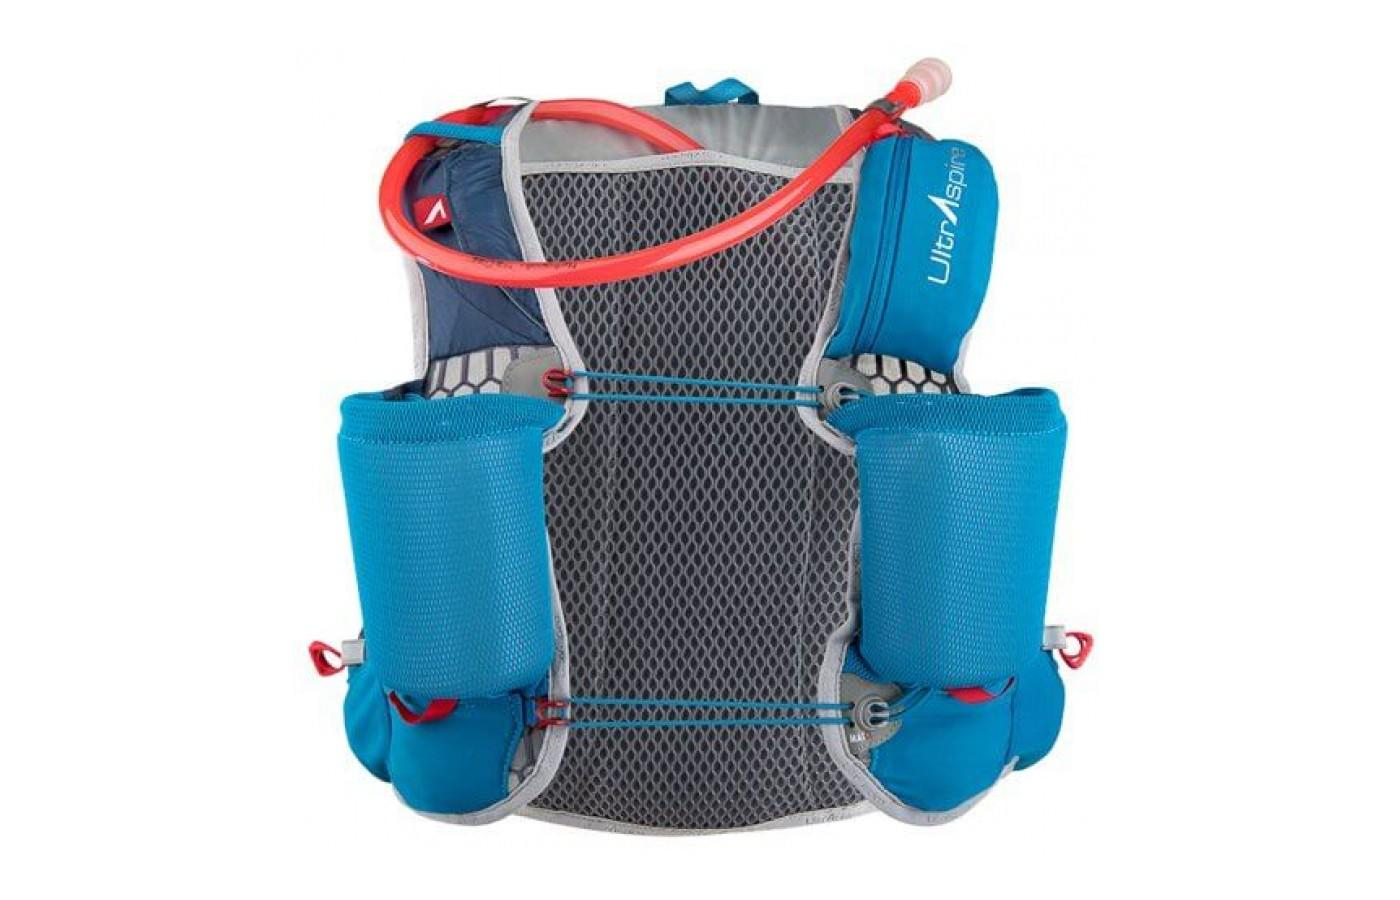 the UltrAspire Zygos 2.0 Vest guarantees a secure, comfortable fit and offers great security of much-needed acccessories while on a long-distance run